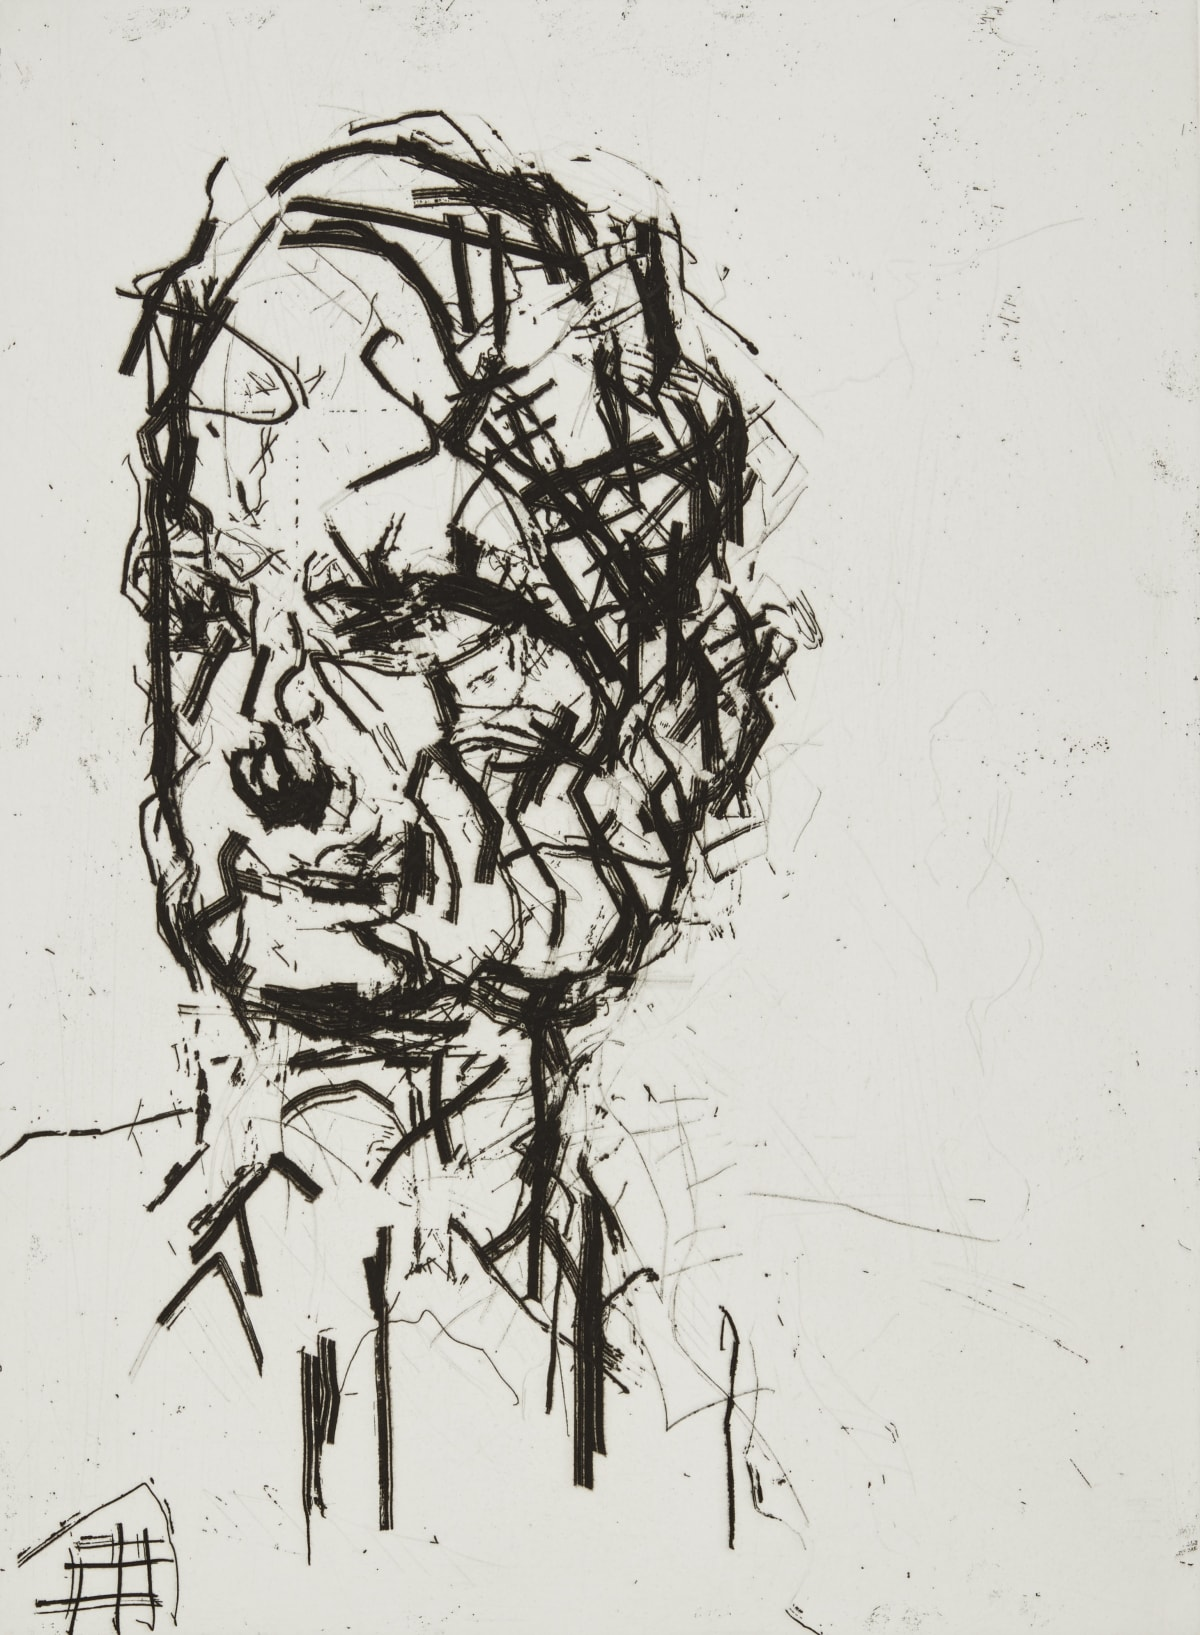 Frank Auerbach David, 2007 Etching and aquatint with engraving Sheet size: 63 x 50 cm / 24.8 x 19.7 in Framed size: 72.5 x 60 cm / 28.5 x 23.5 in 7/40 Signed, numbered and titled